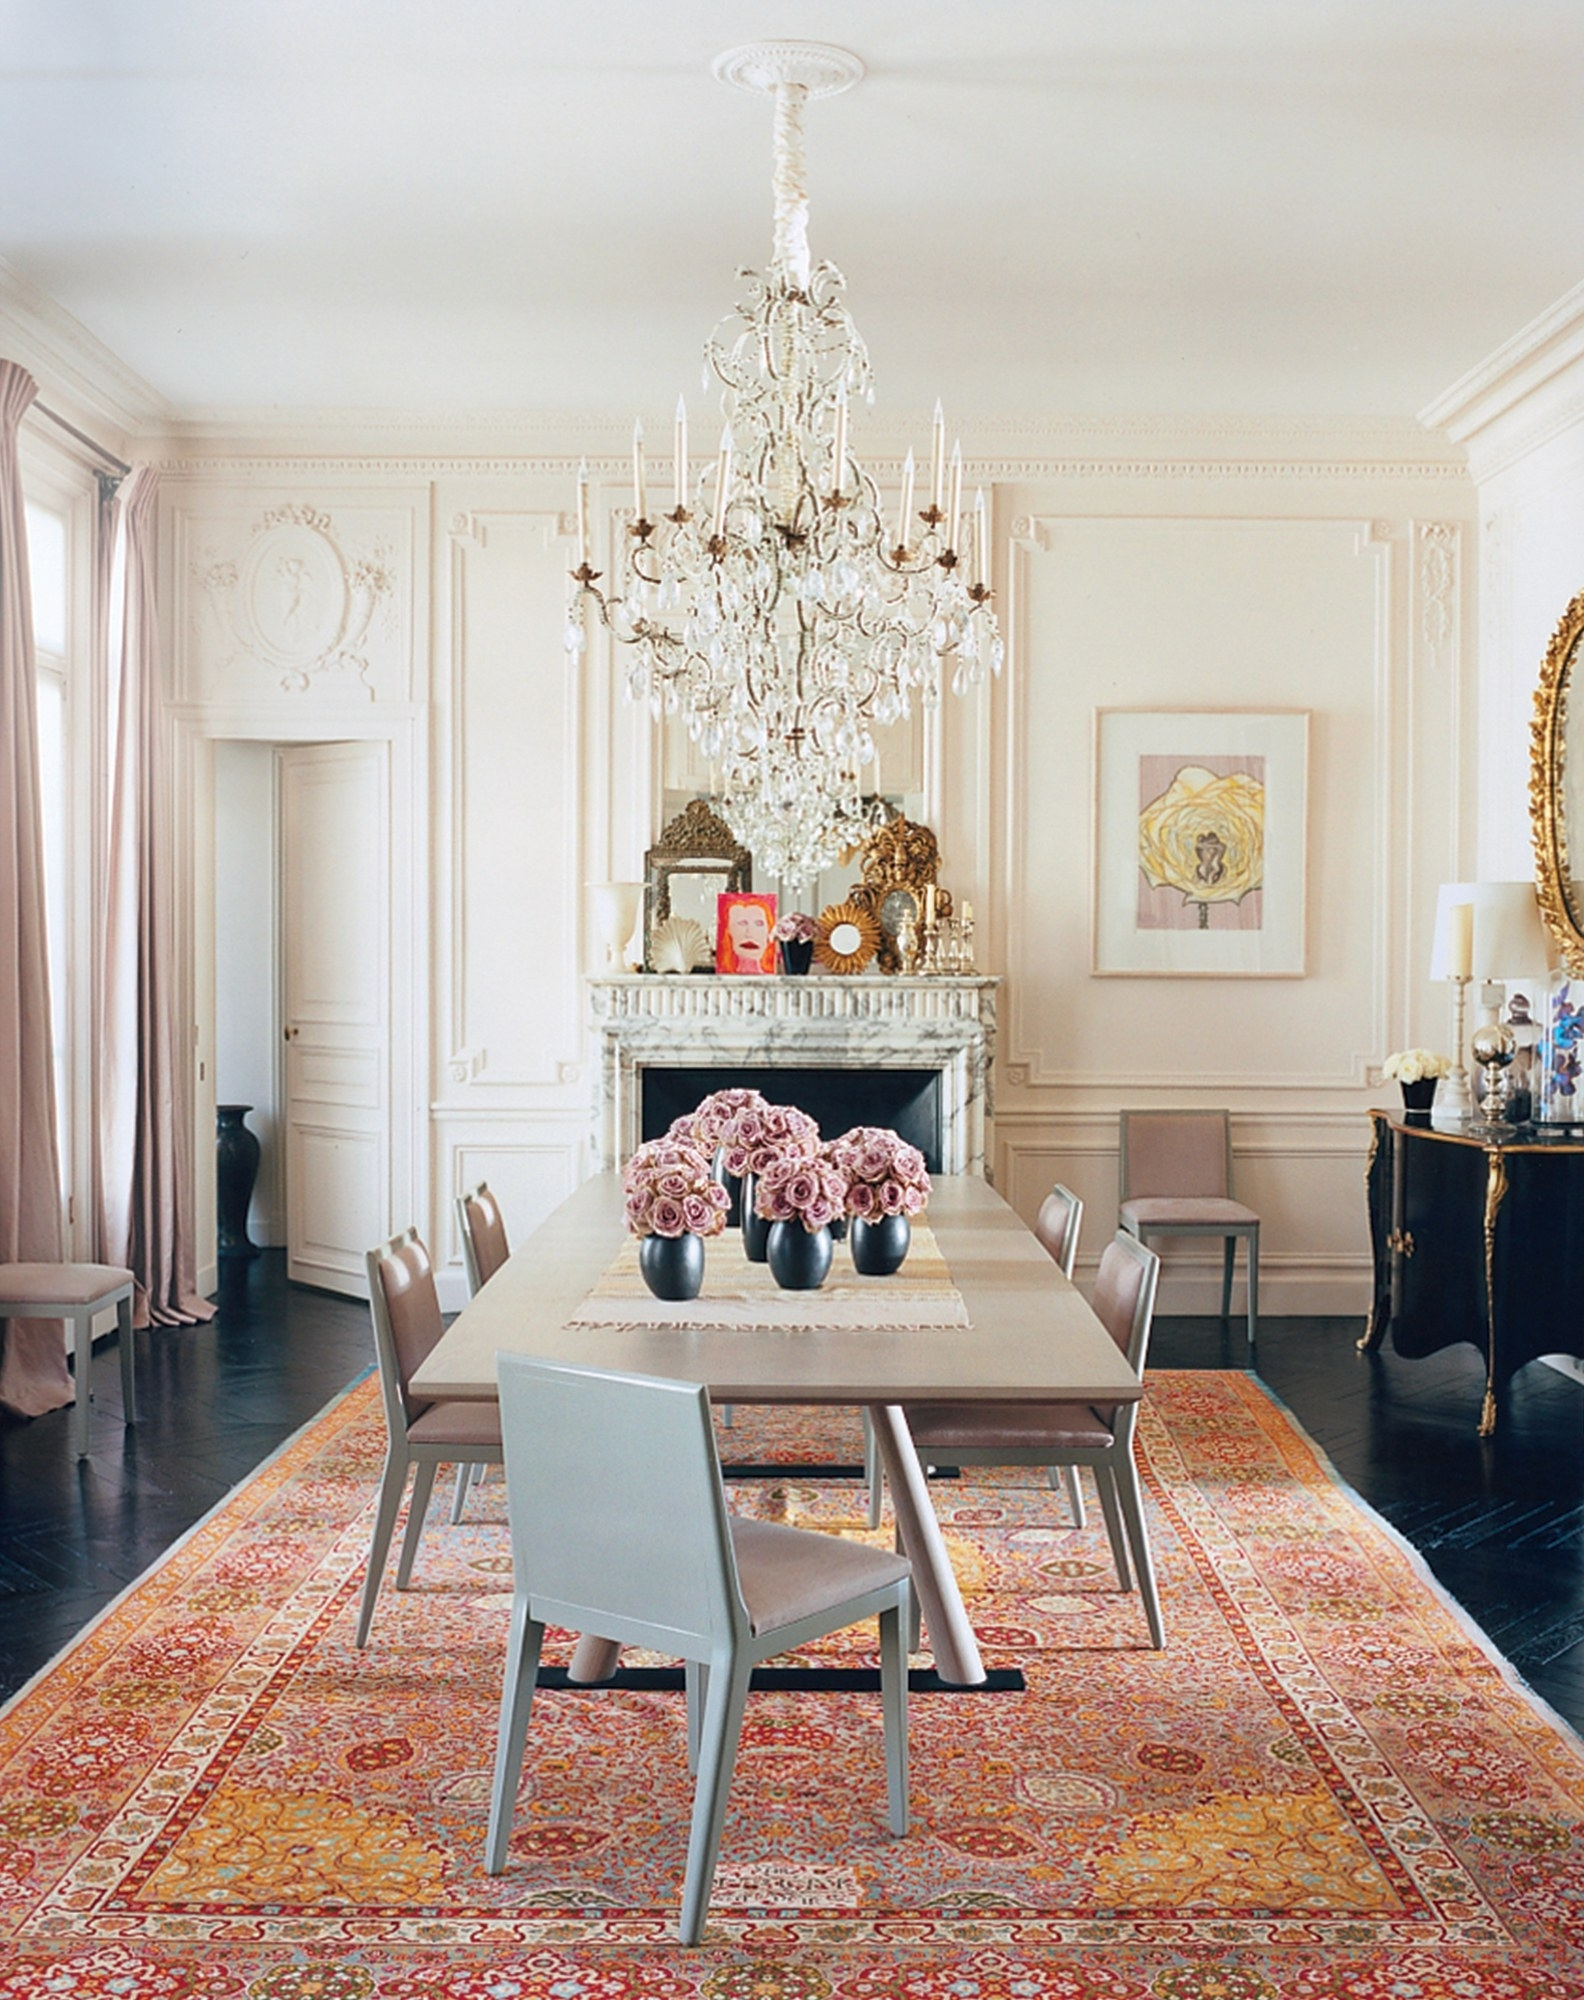 Latest A Look At 30 Dining Rooms In Vogue – Vogue For Vogue Dining Tables (View 5 of 25)